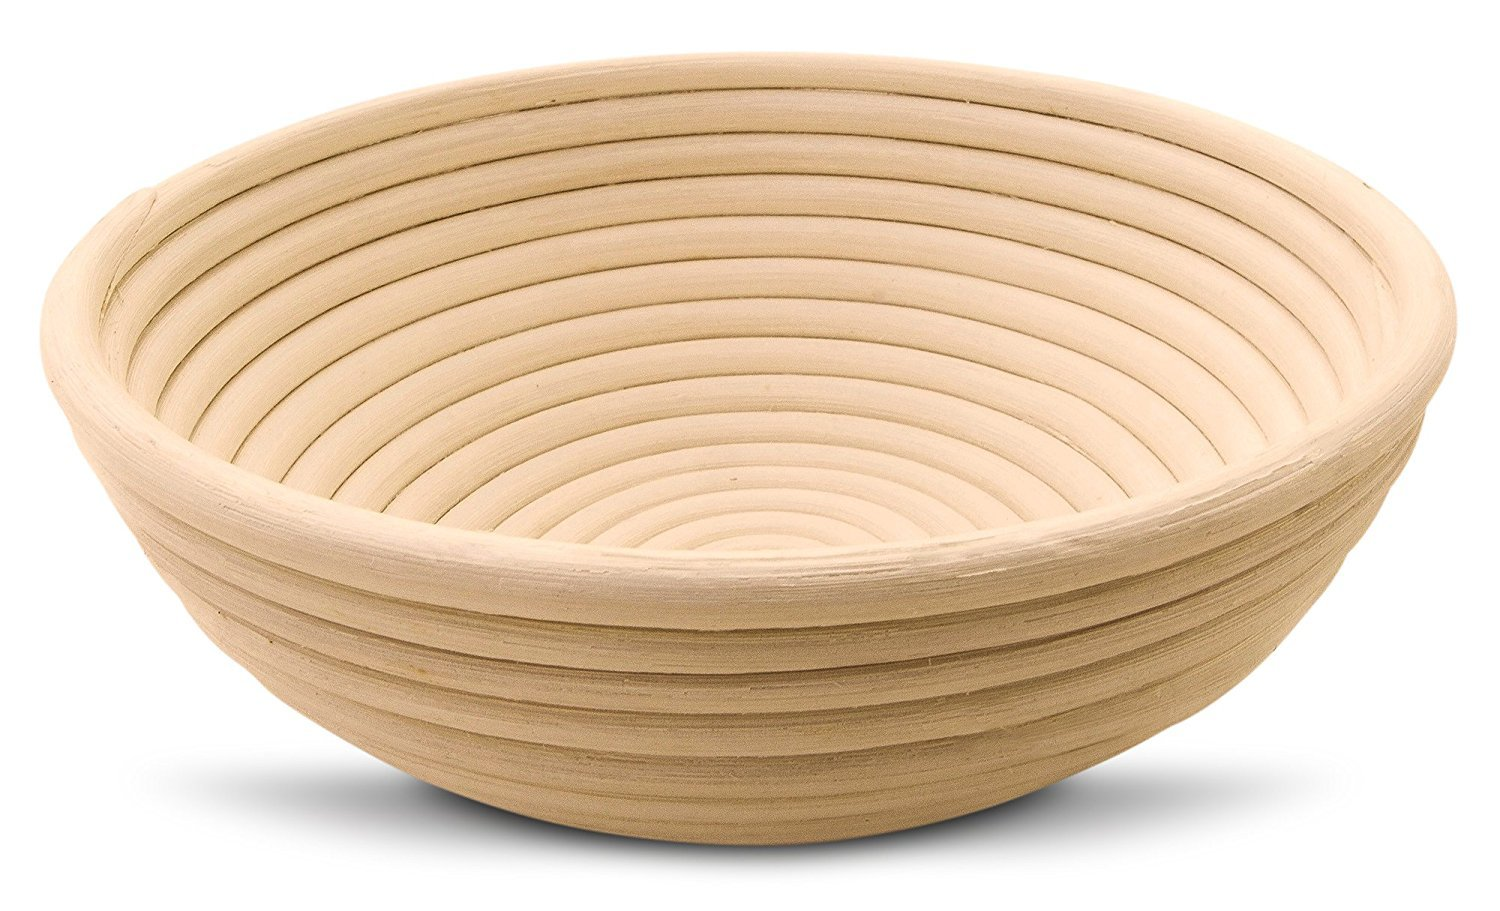 9' Inch Round Banneton Proofing Basket for Artisan Bread And Dough. E-Book Included With Instructions, Ideas And Recipes. Eco-Friendly Rattan Cane Brotform With Rising Pattern For Artisan Baking. Pingo Gear SYNCHKG091514